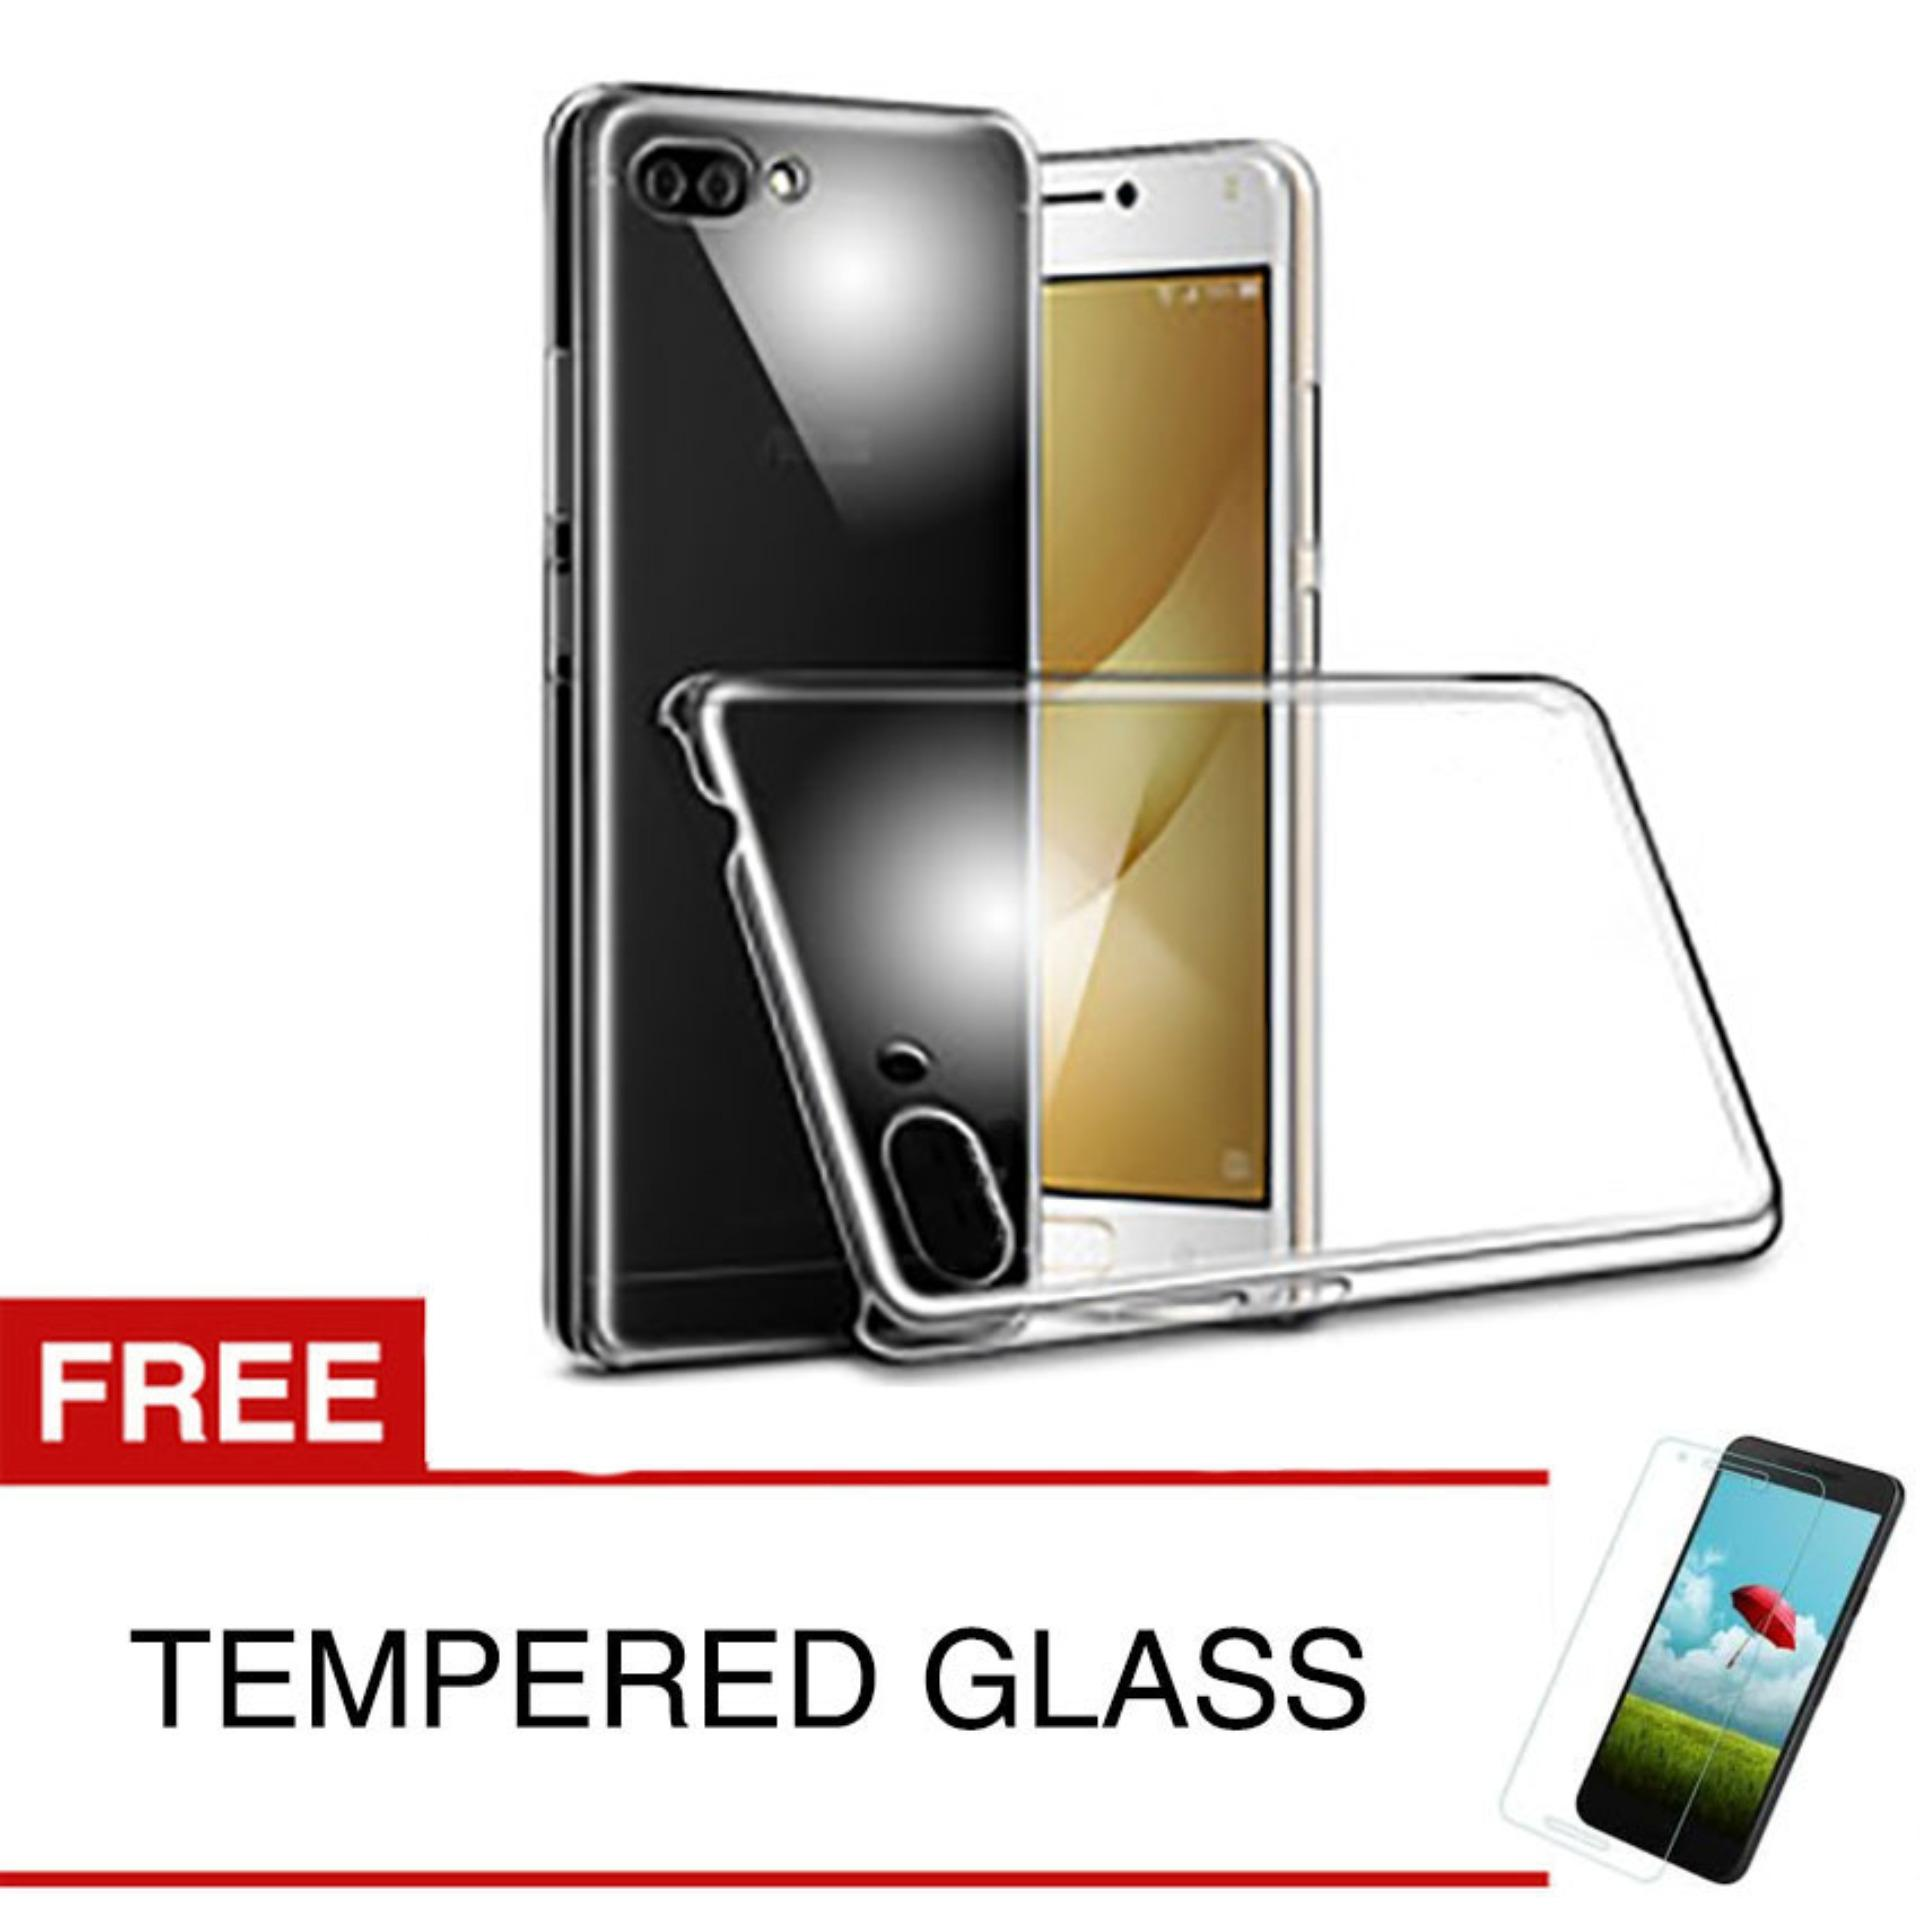 Jual Crystal Case For Asus Zenfone 4 Max Pro Zc554Kl Clear Hardcase Gratis Tempered Glass Online